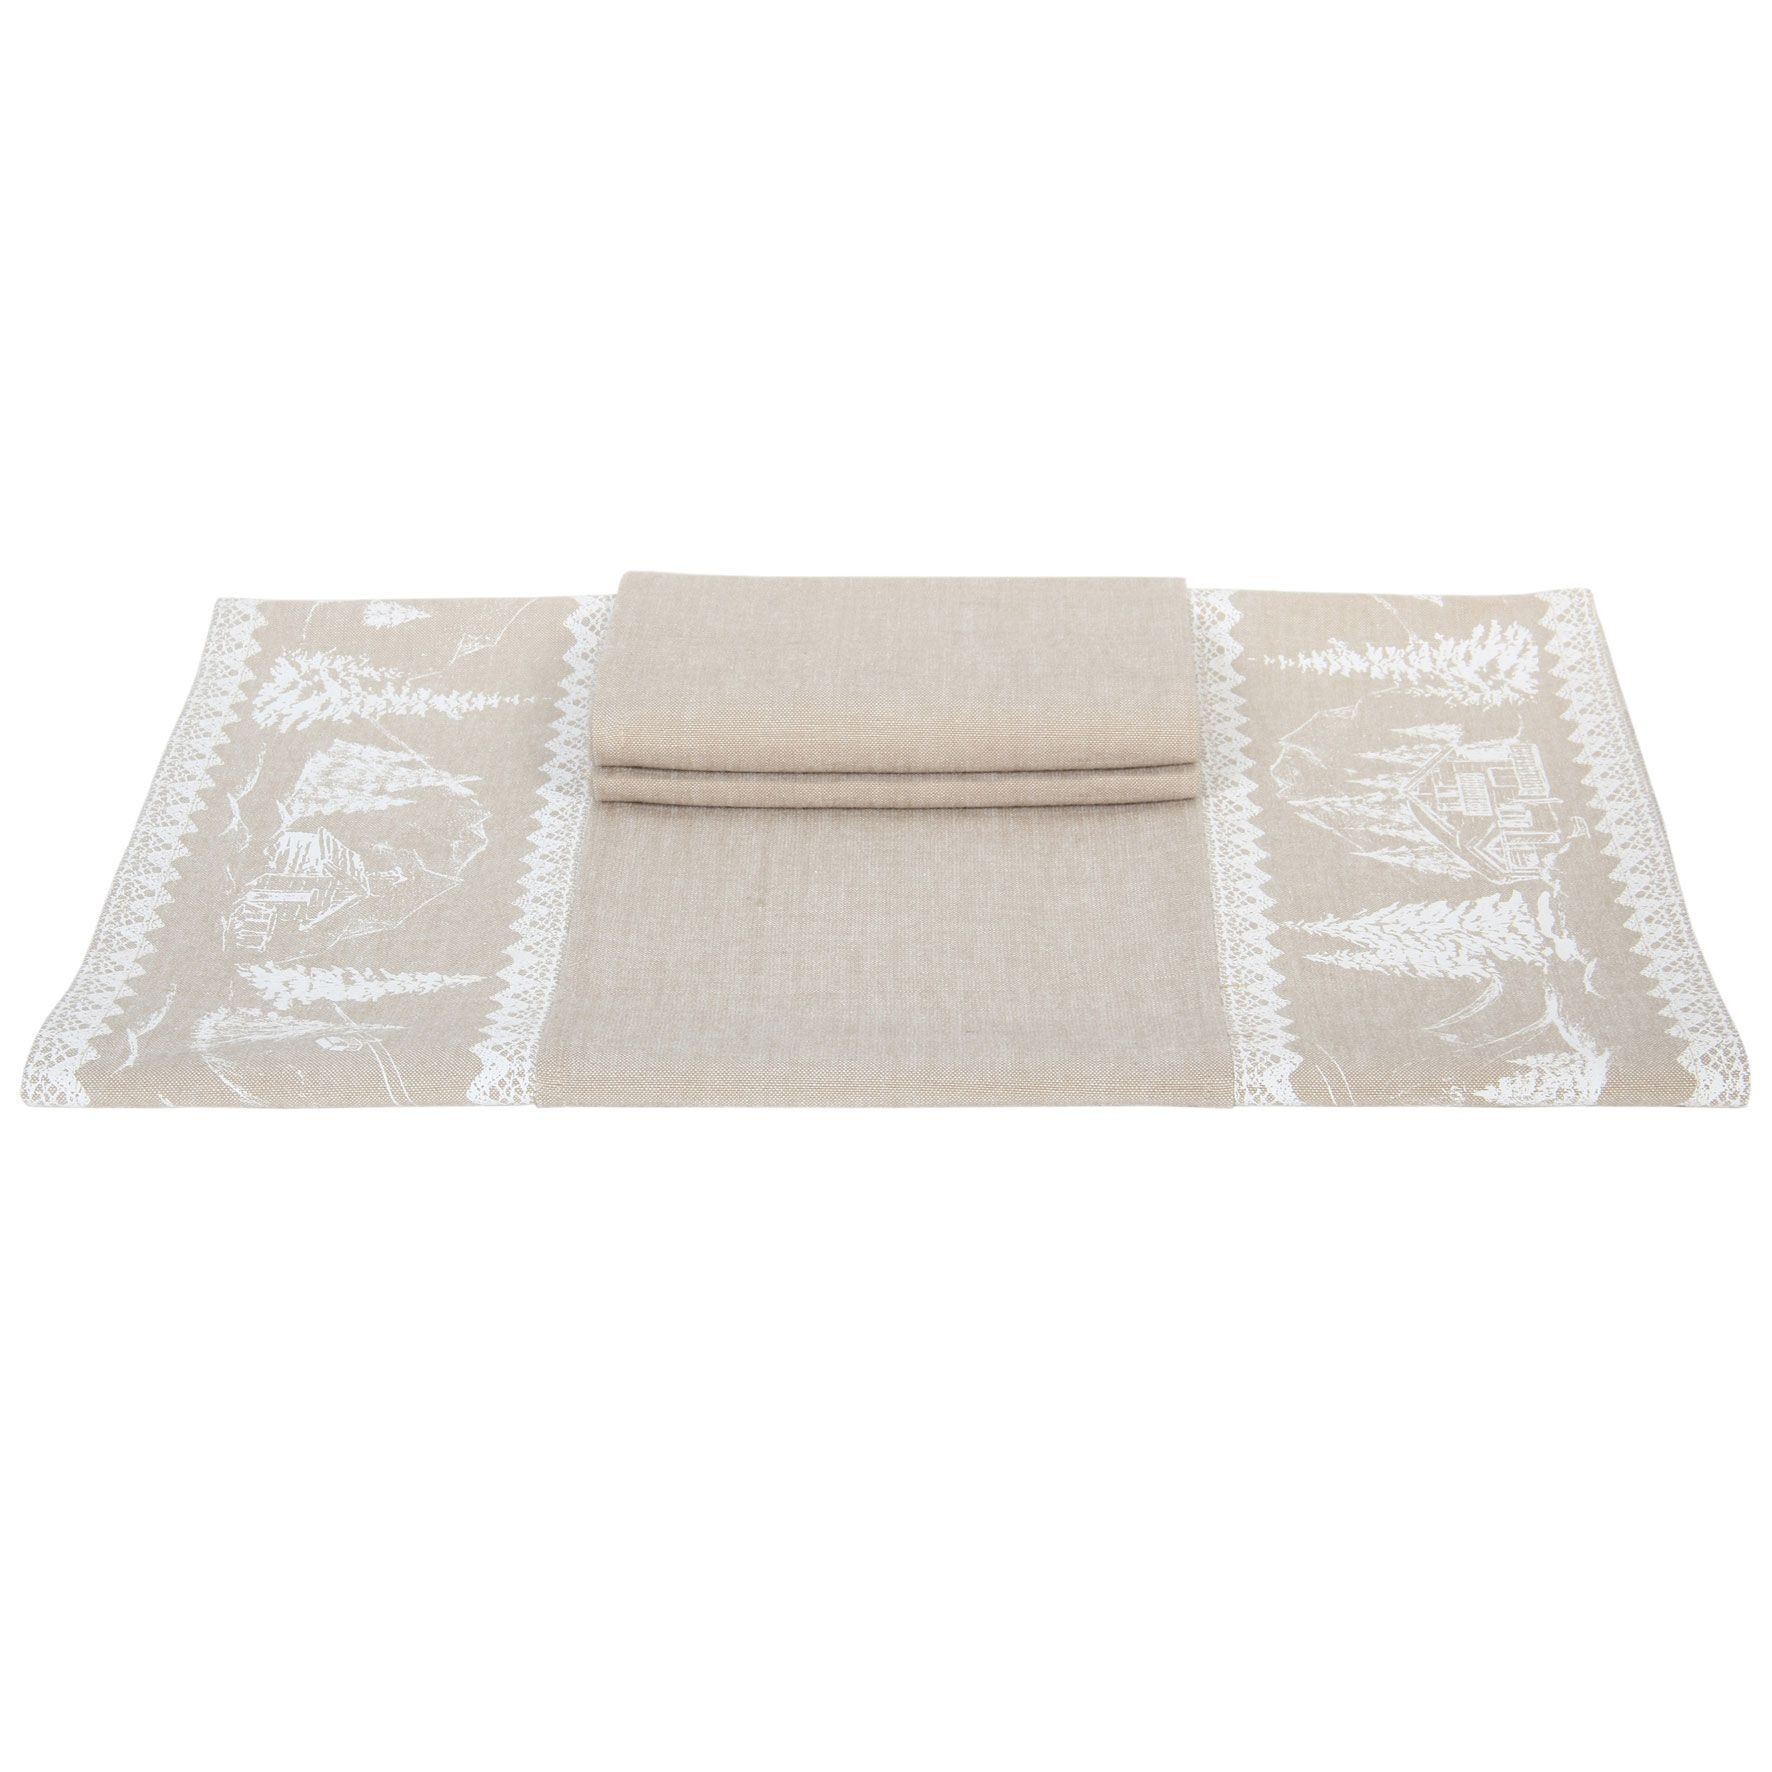 Montagne - double set de table  et 2 serviette assorties